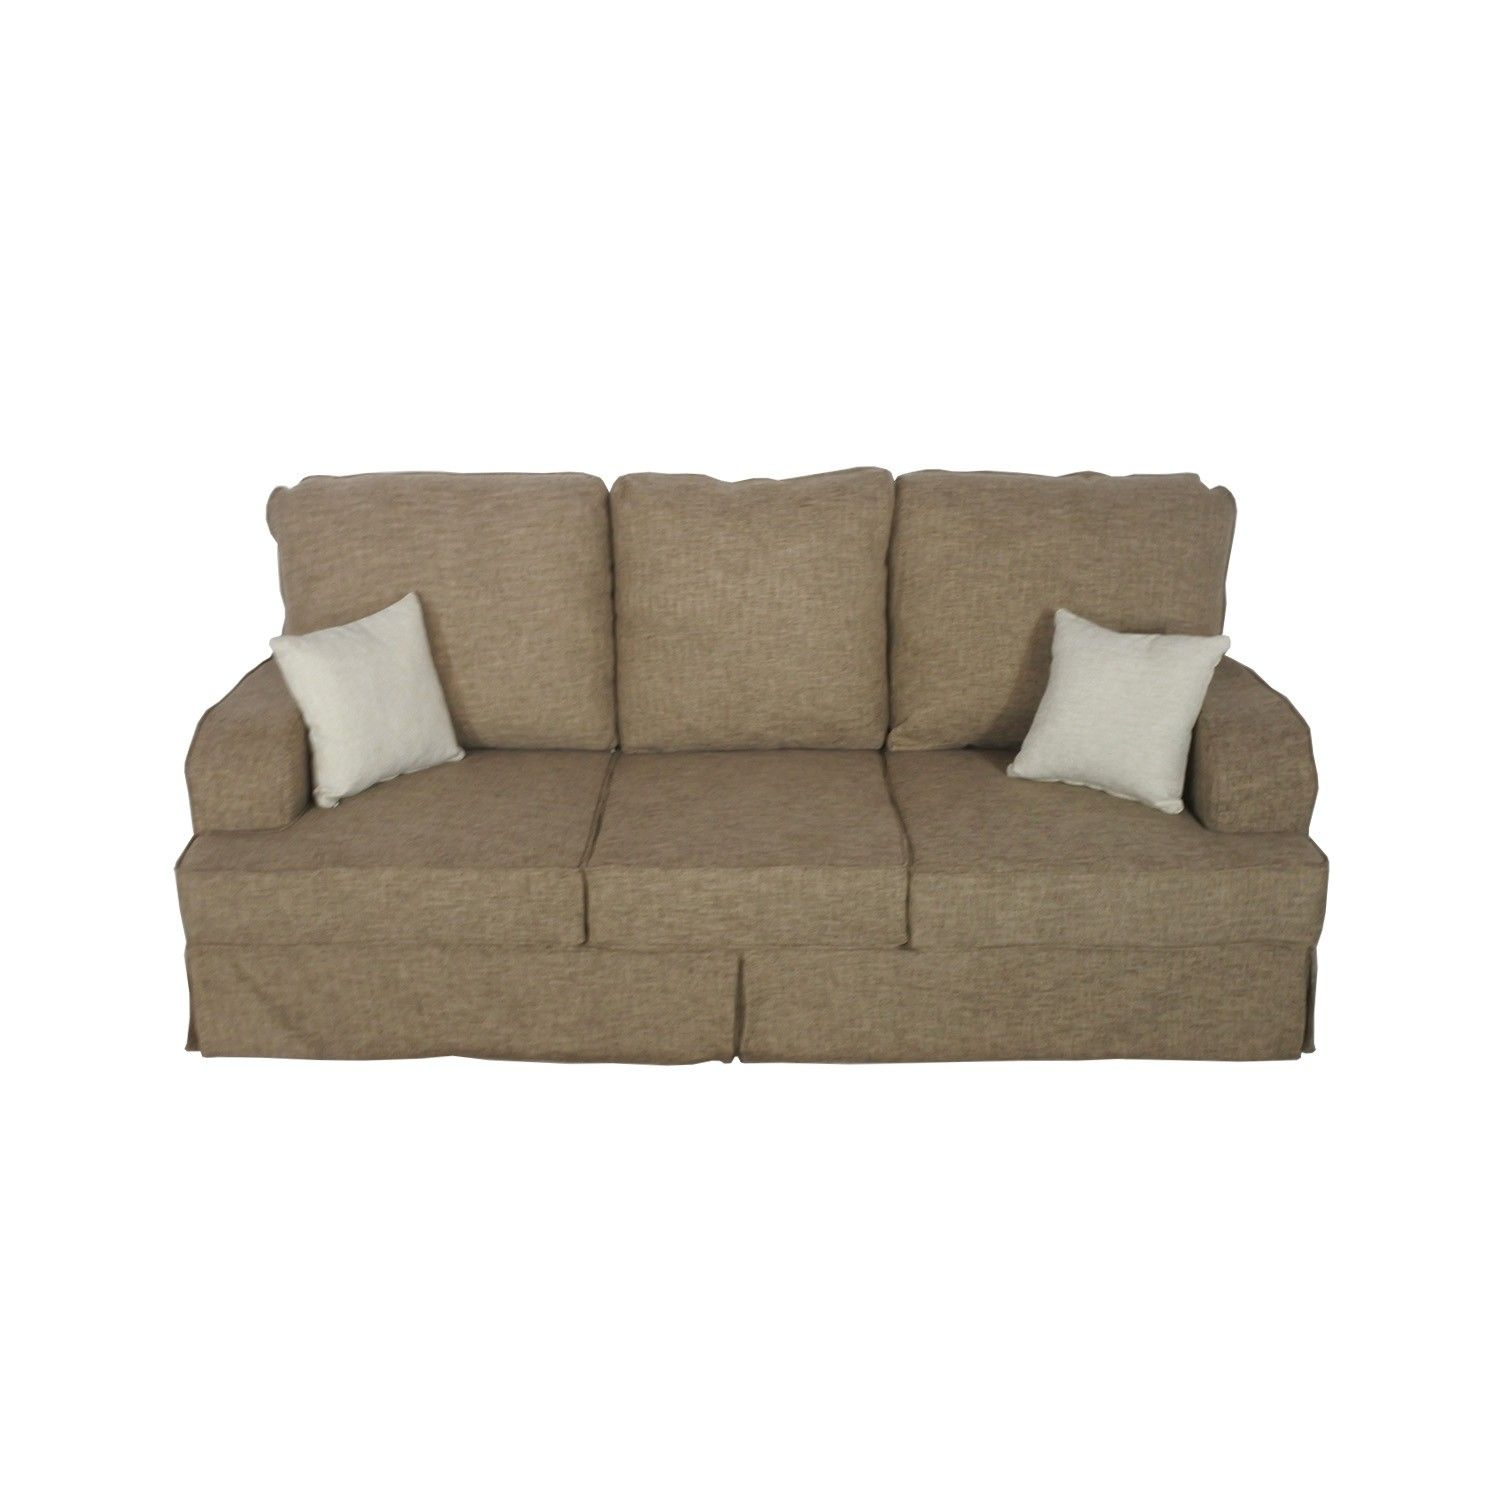 Pin On White 3 Seater Sofa Cover